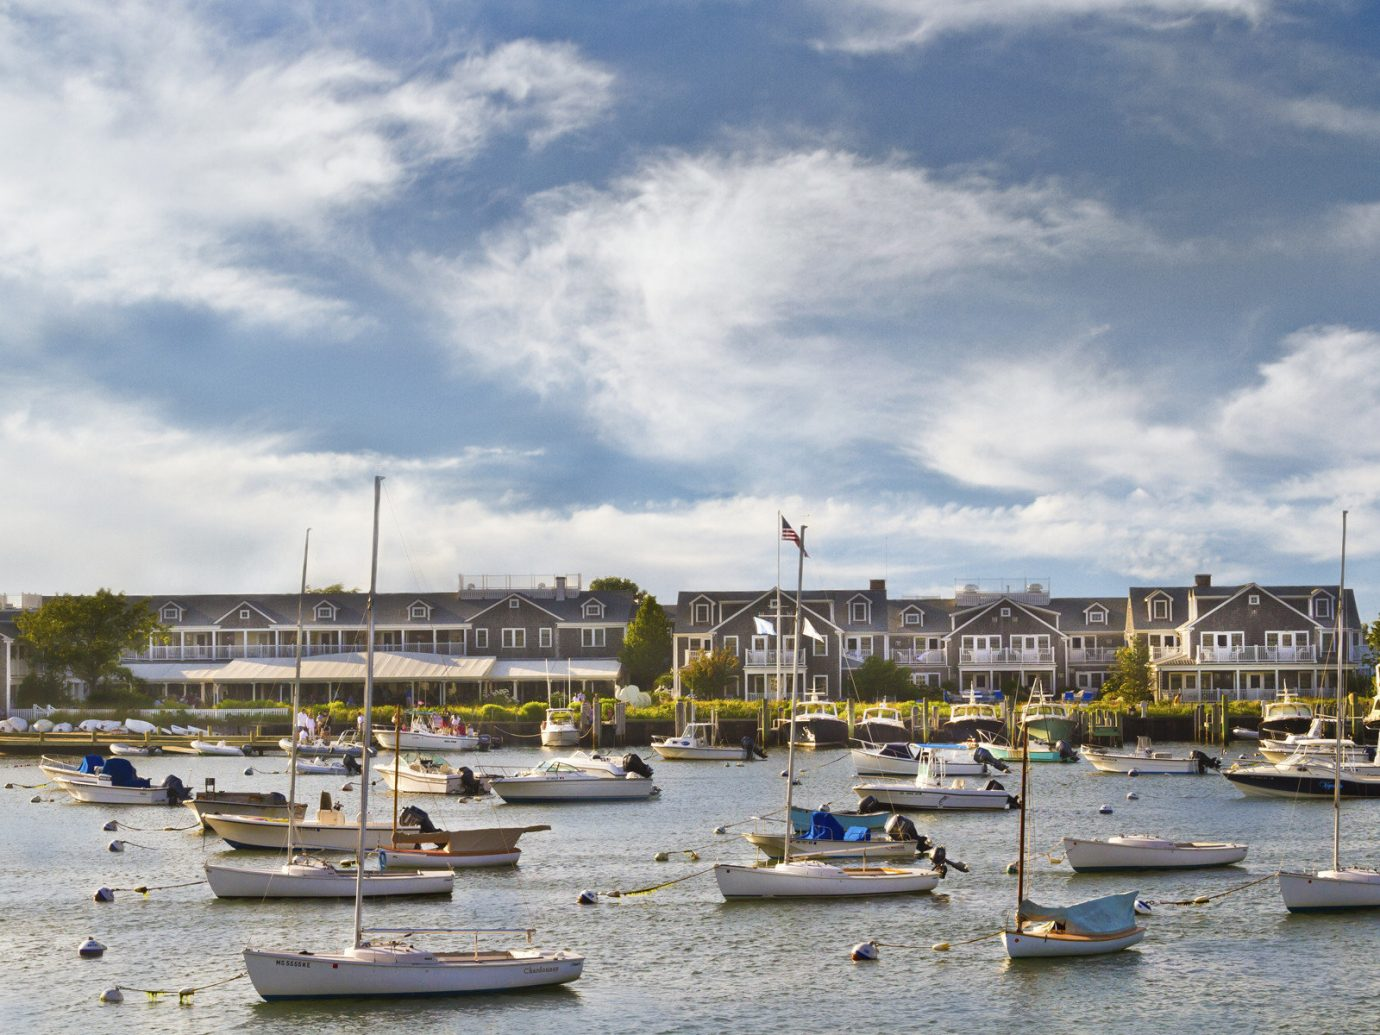 View of Nantucket Rhode Island from the harbor